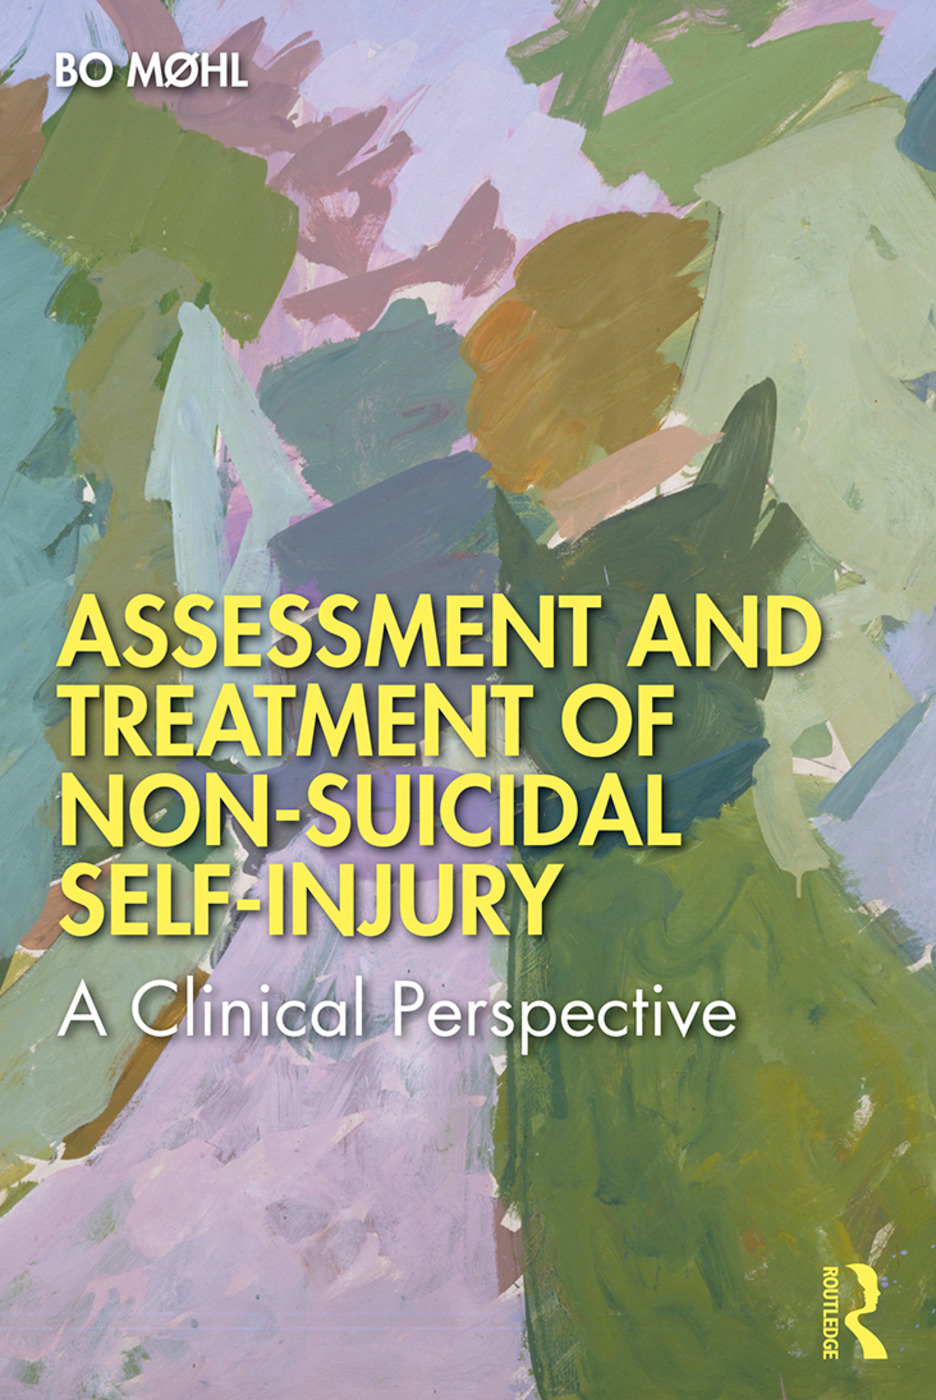 Assessment and Treatment of Non-Suicidal Self-Injury: A Clinical Perspective book cover